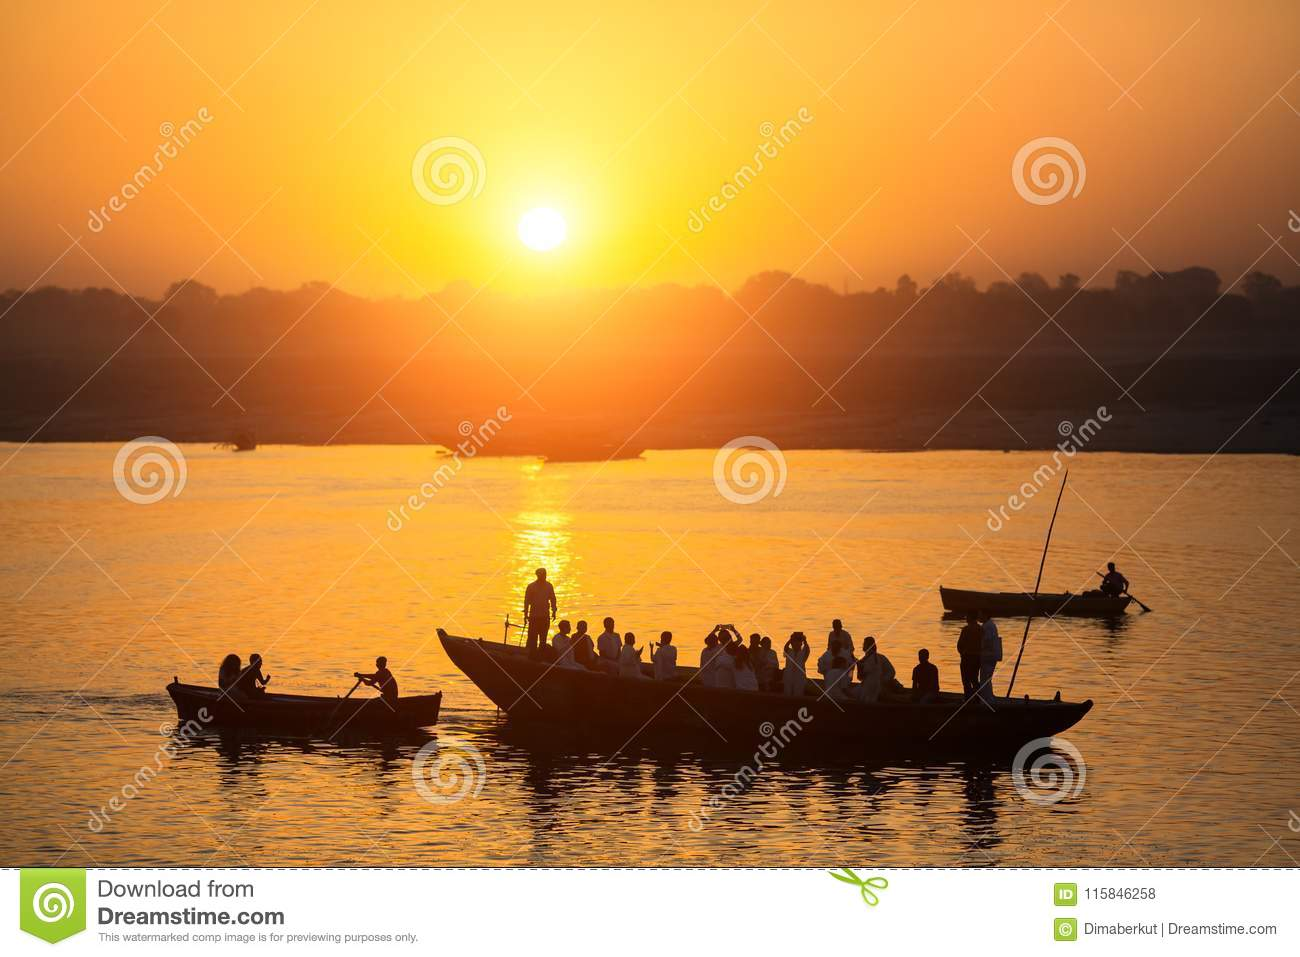 Silhouettes of boats with pilgrims during sunset on holy Ganges river, Varanasi .